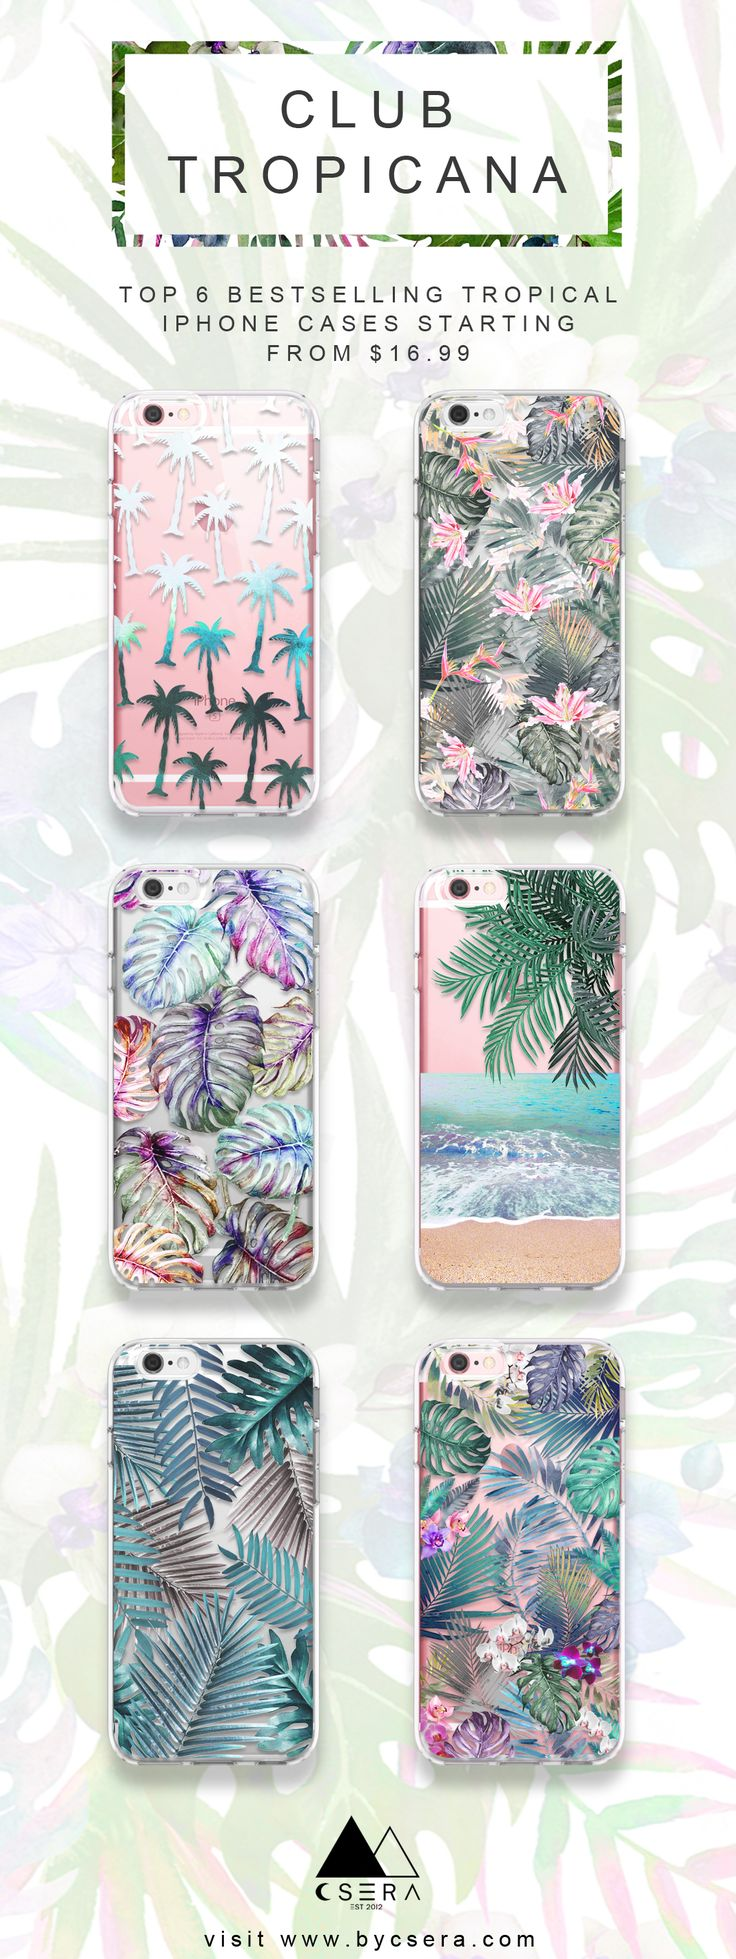 Top 6 best selling tropical iPhone cases at www.bycsera.com  Shop now, receive in 1 week max! Samsung galaxy S8 cases now in stock and iPhone cases starting from $16.99